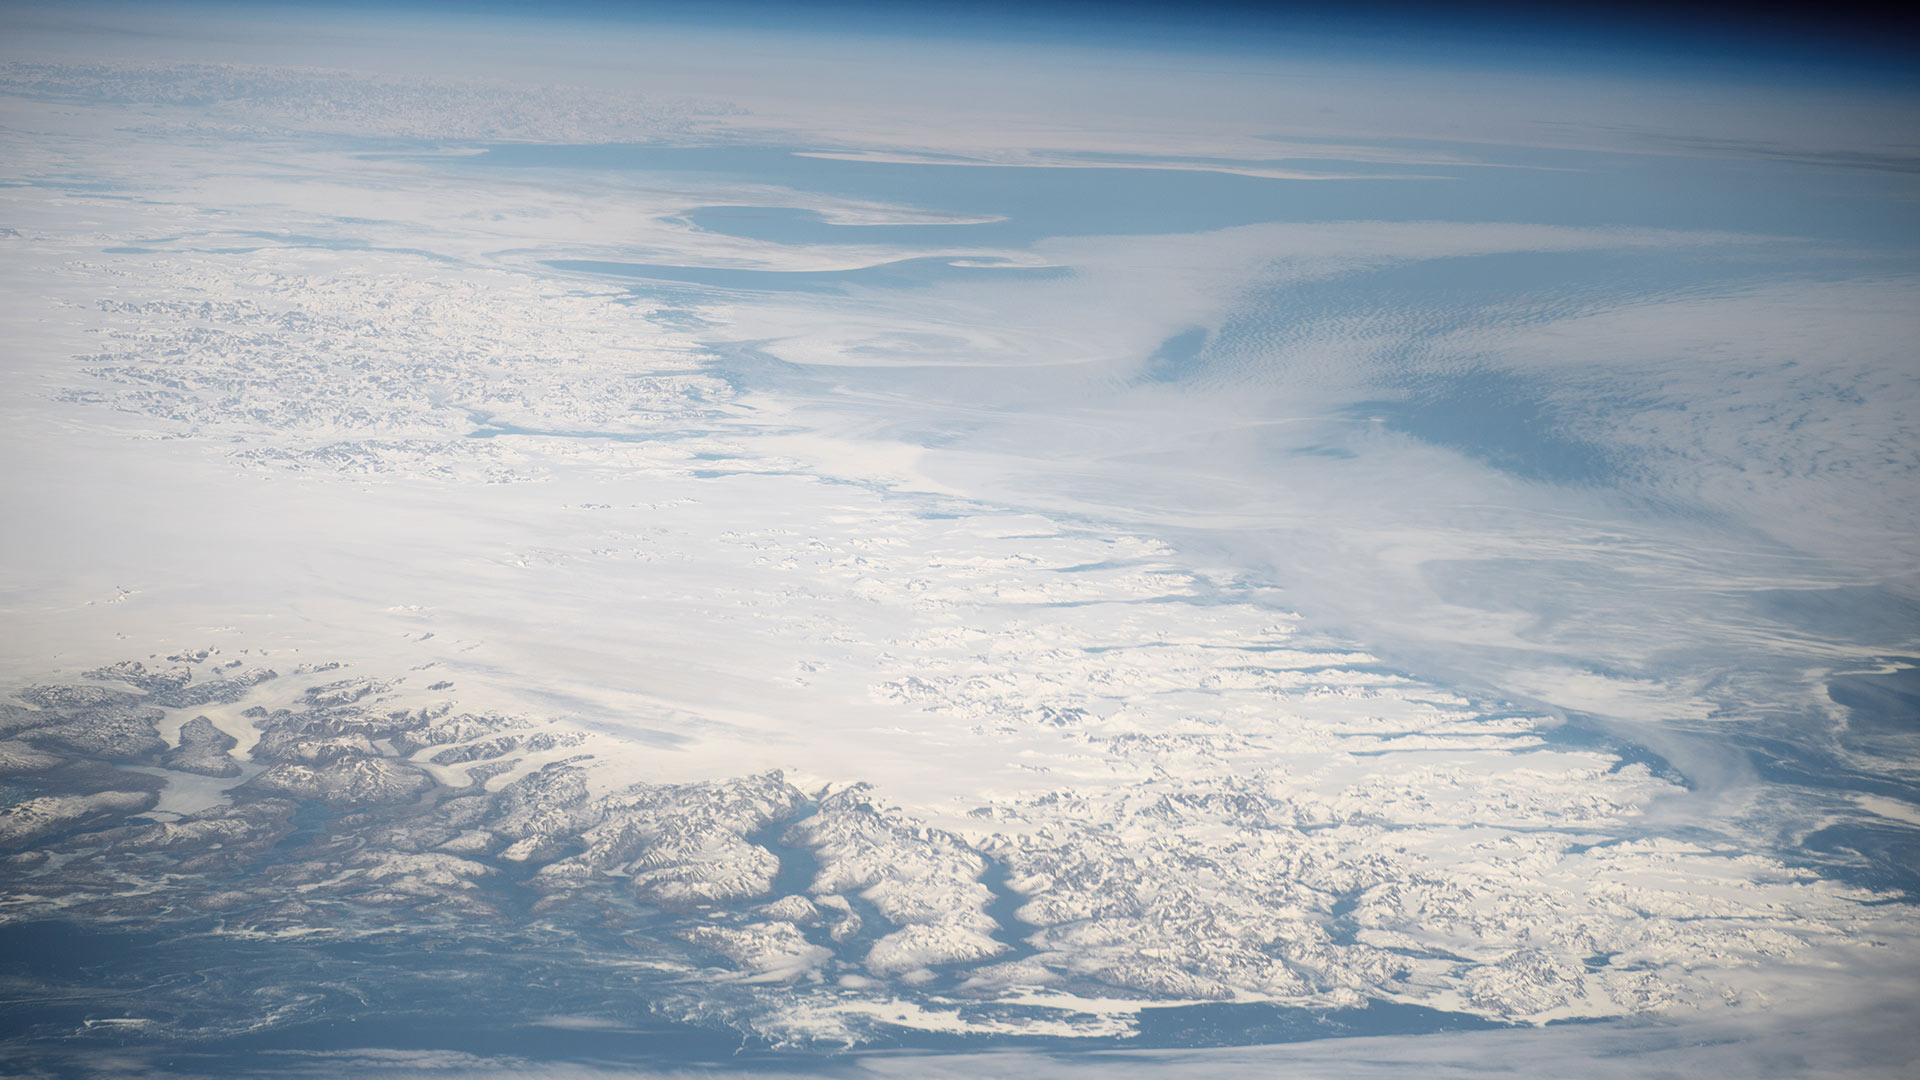 An aerial photo of the southern tip of Greenland's ice sheet, surrounded by glacier-carved fjords. UA scientist Jack Reeves Eyre says the island's ice melt could significantly raise sea levels in the next 50 years.